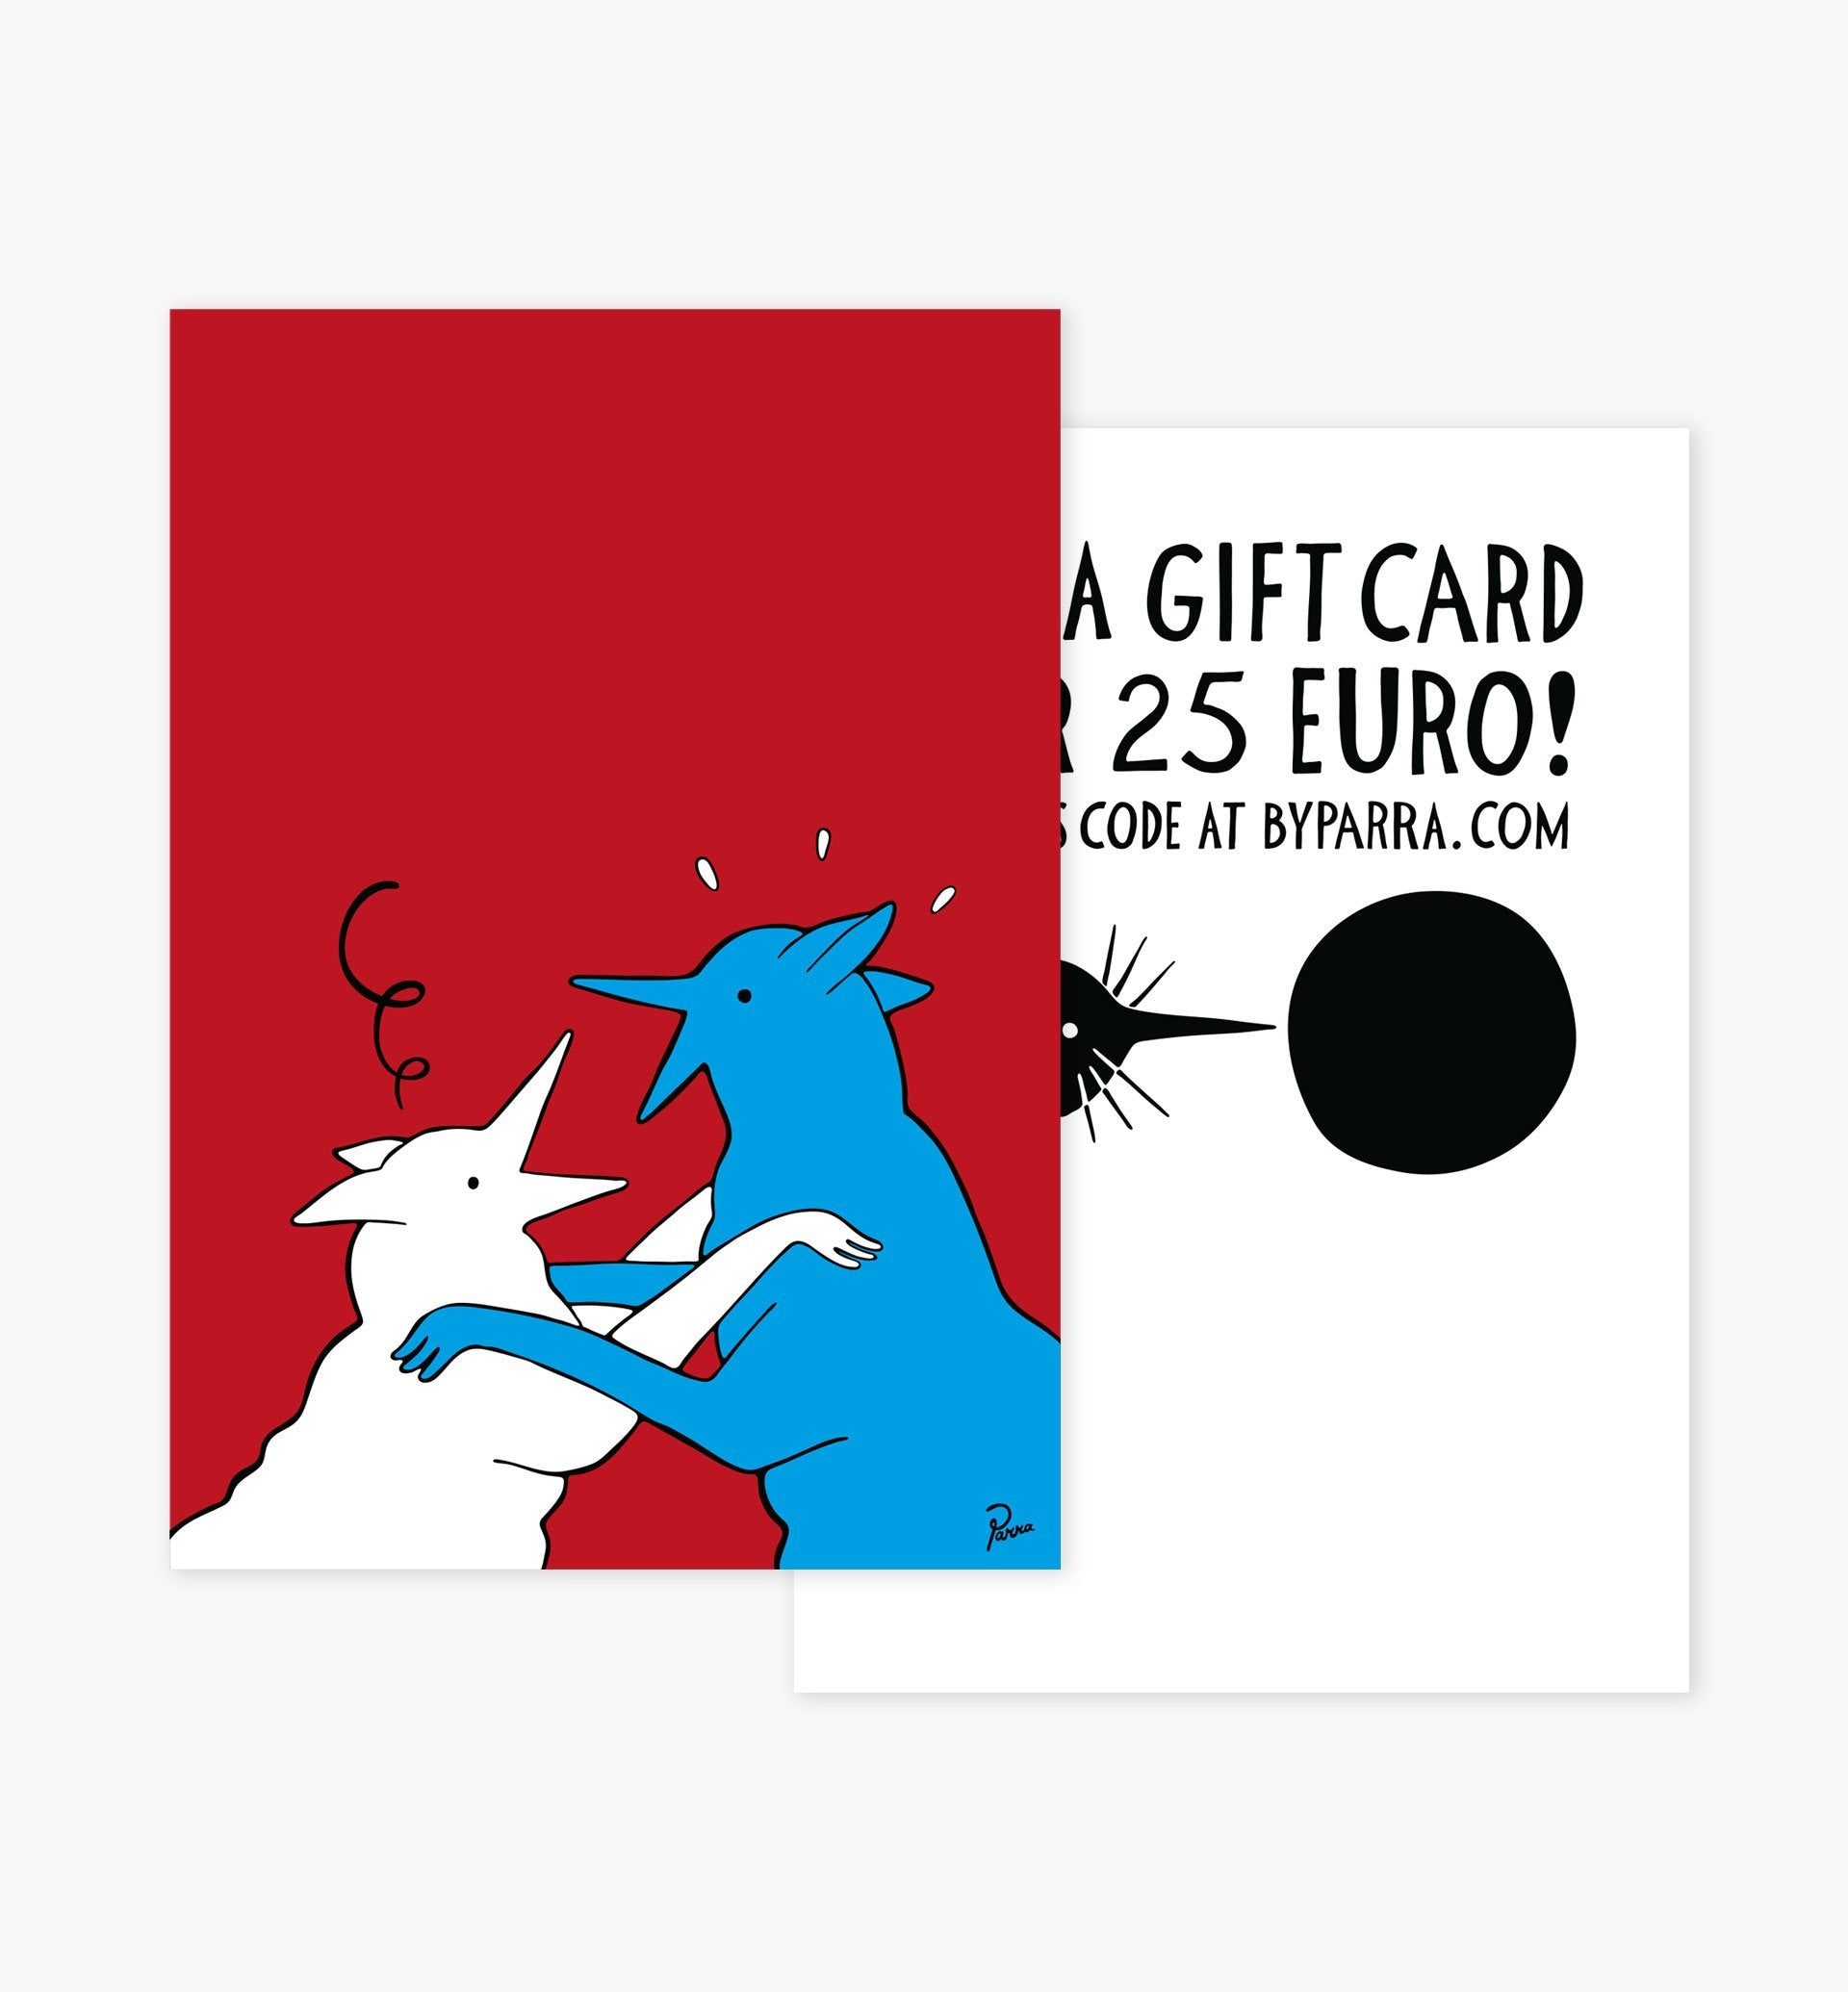 Parra - gift card 25